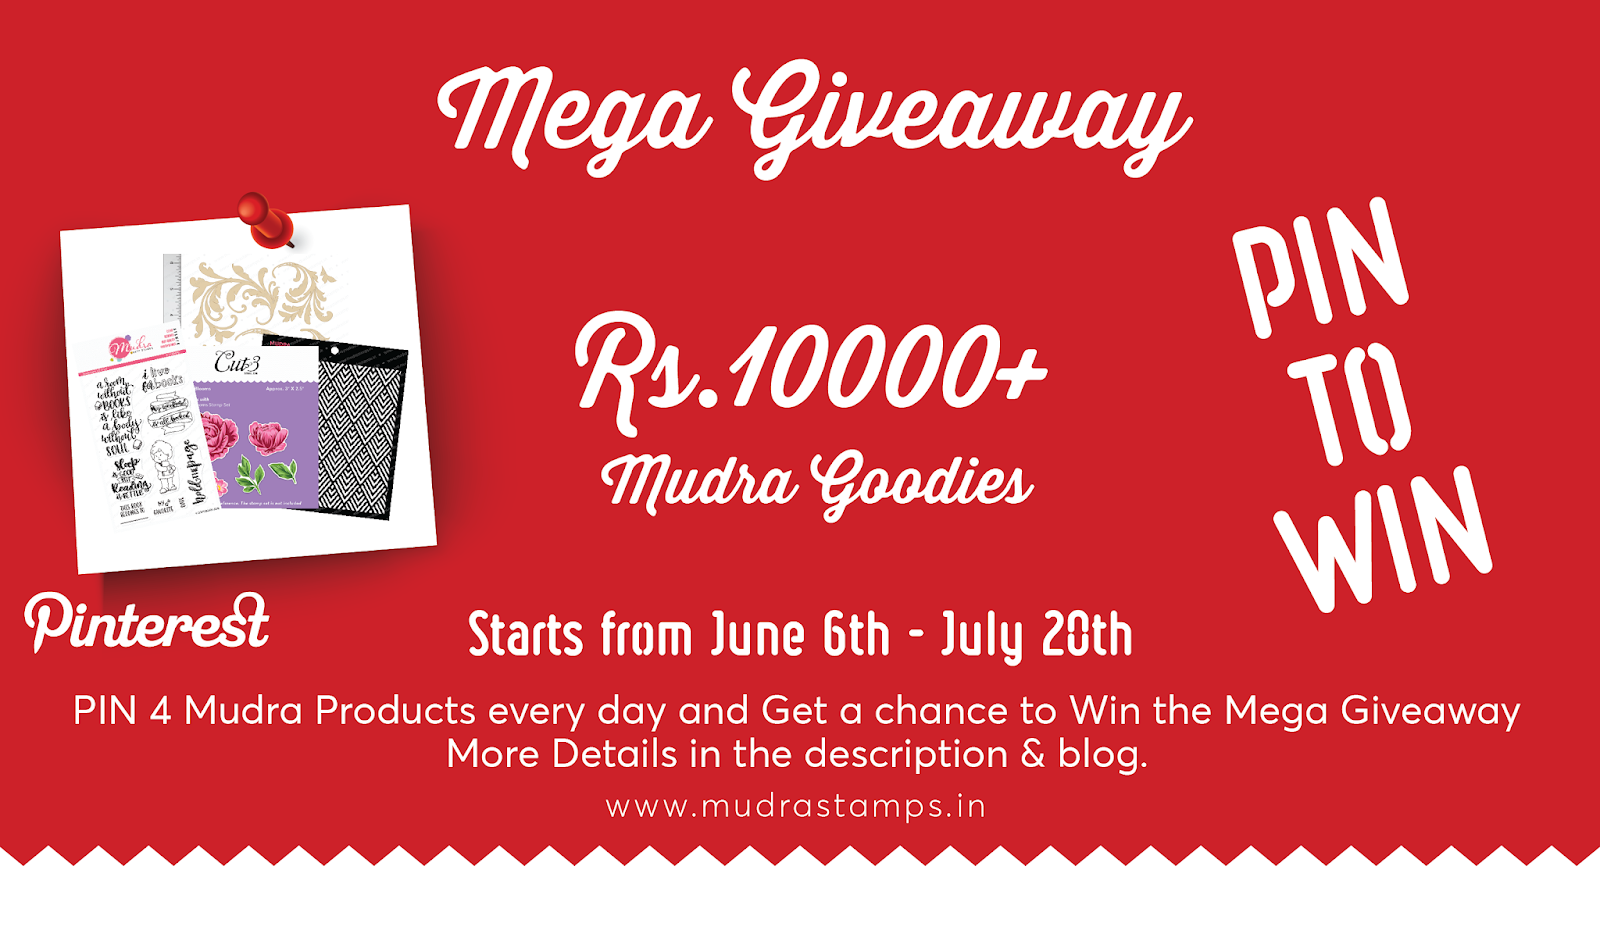 Mudra Craft Stamps 10K Giveaway